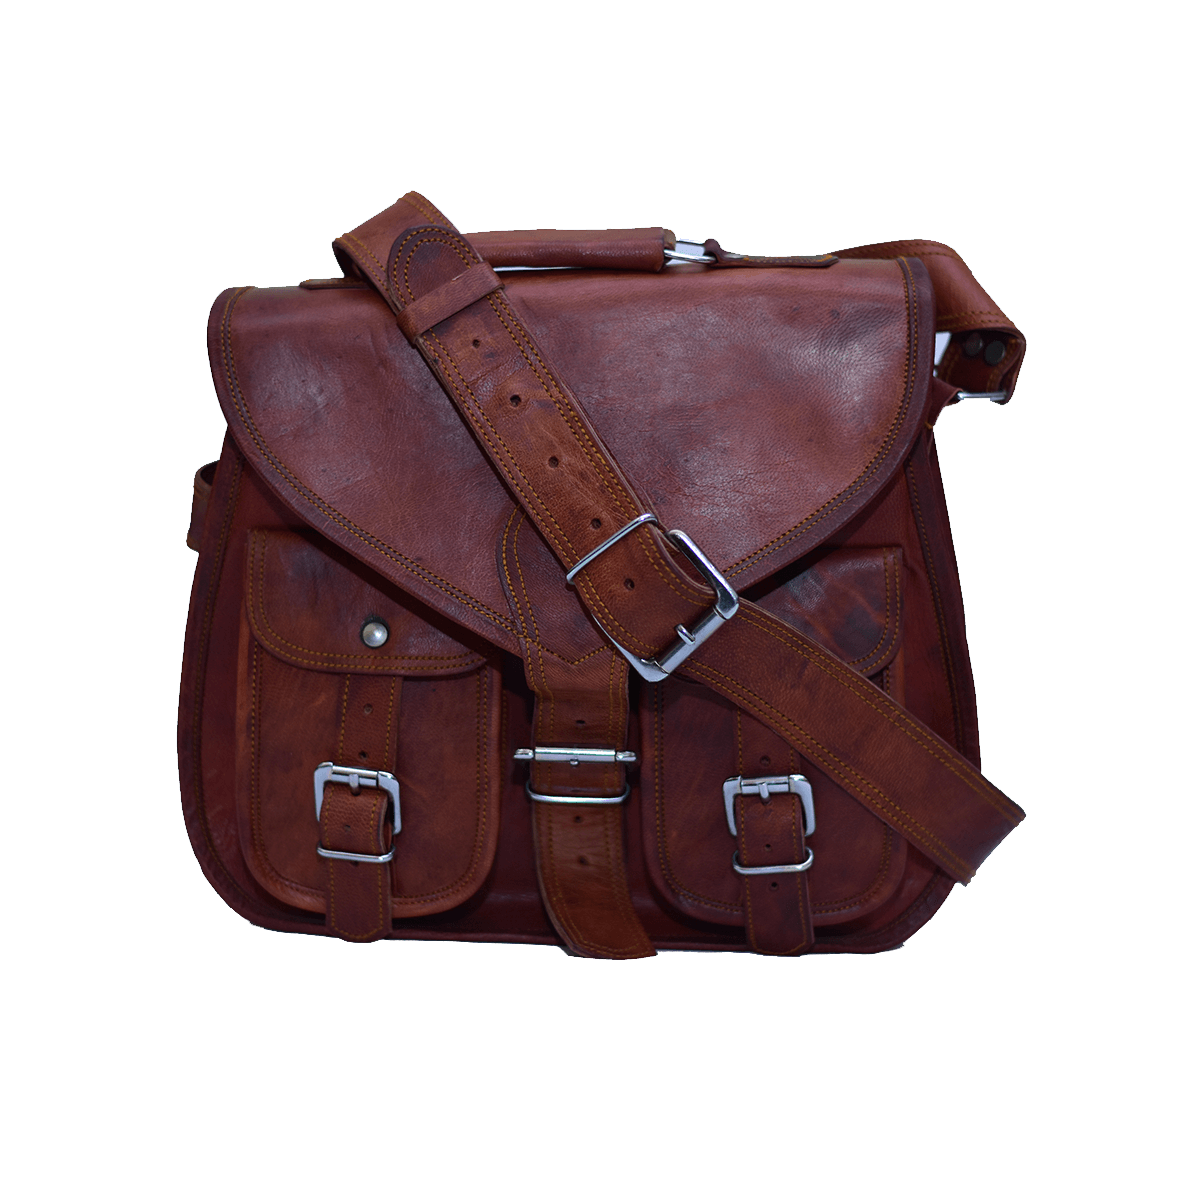 Leather handmade Bags